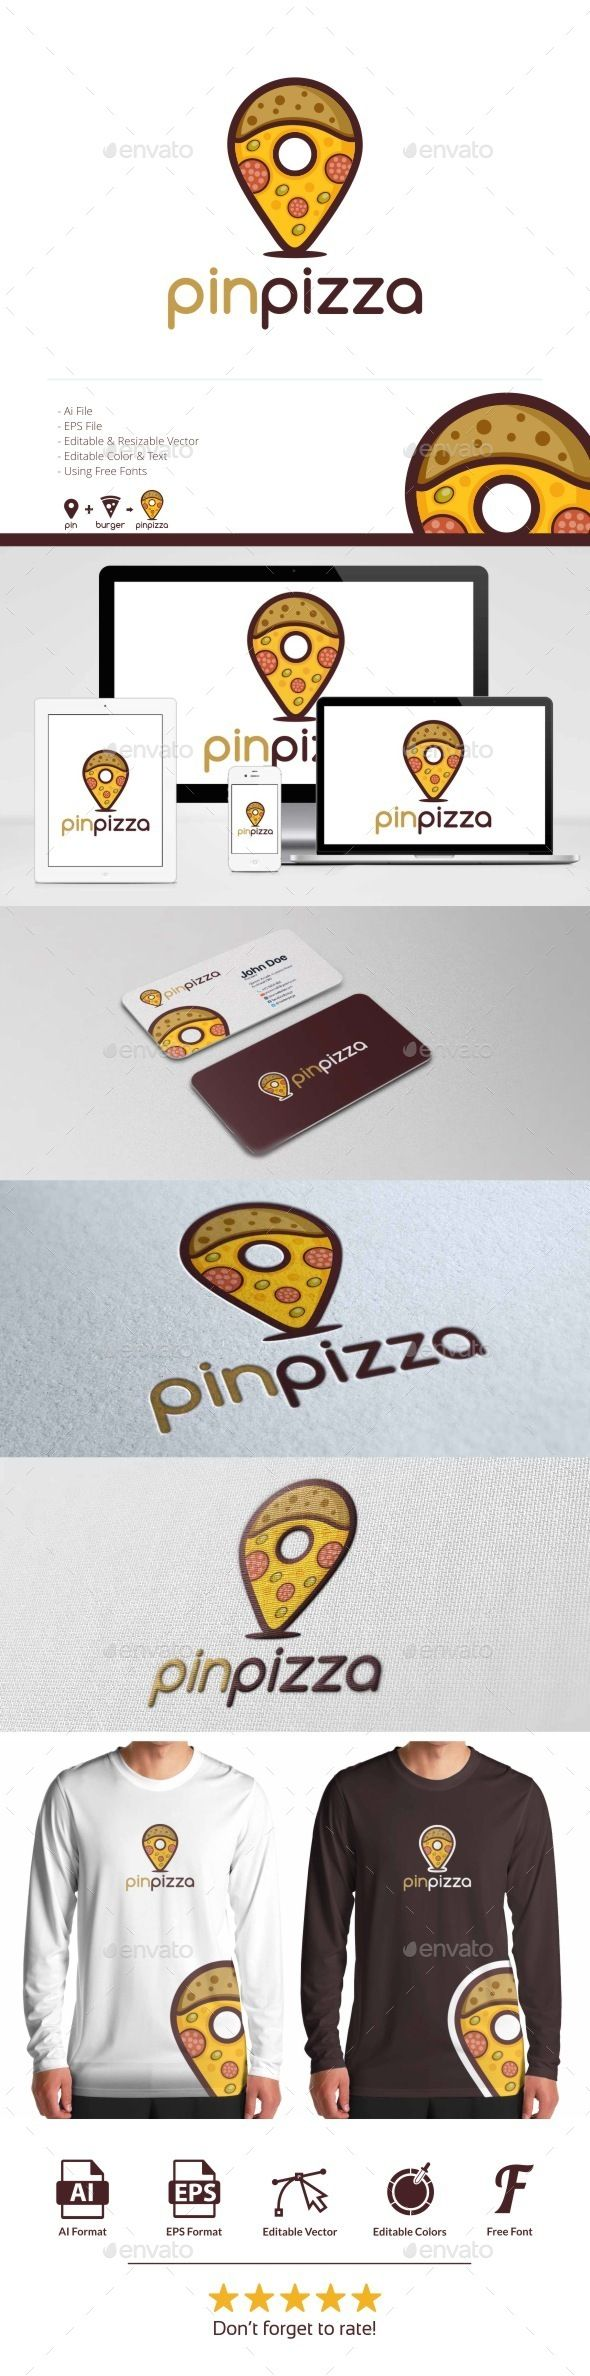 Pin Pizza Logo - Symbols Logo Templates